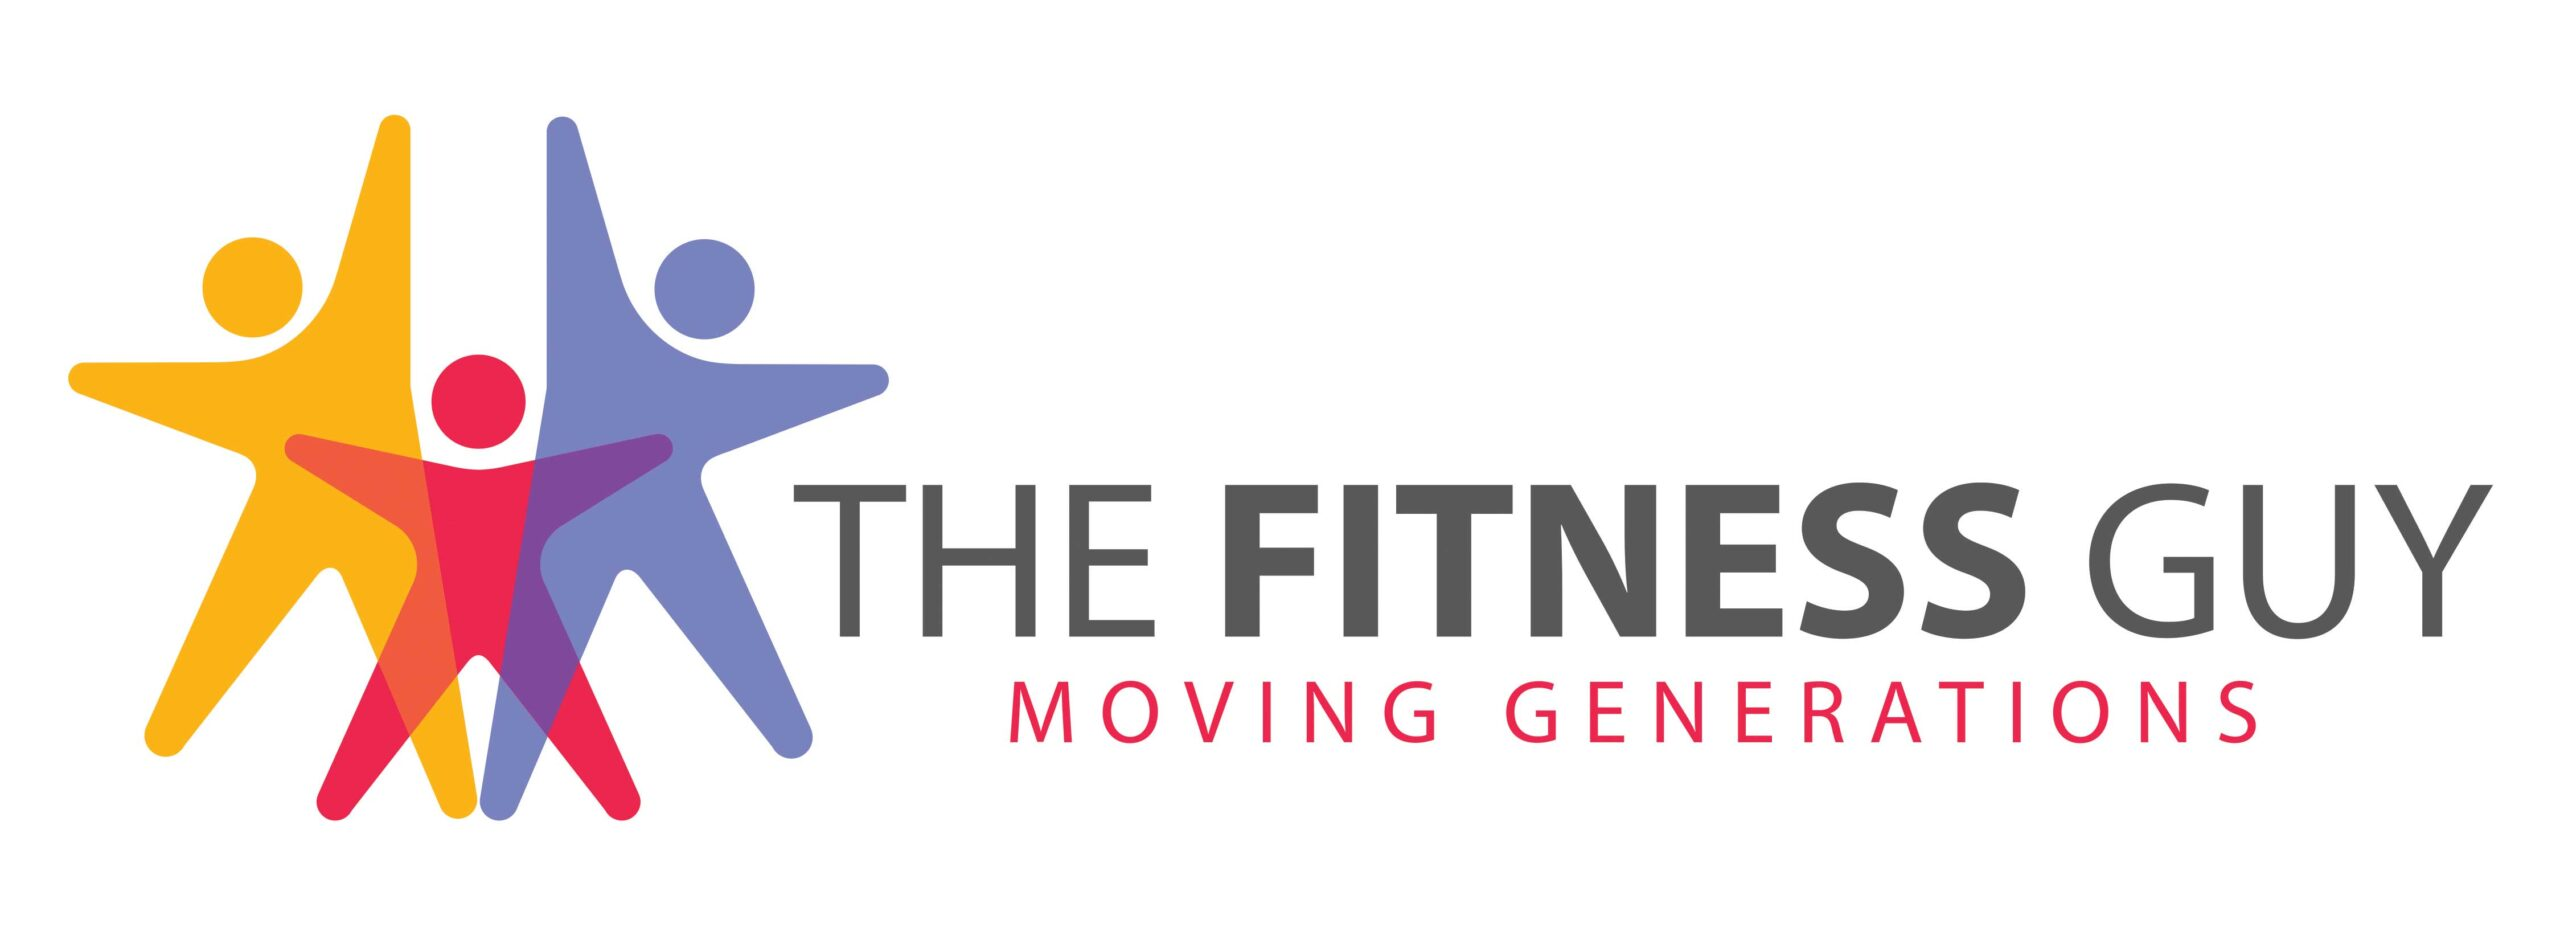 The Fitnss Guy Logo